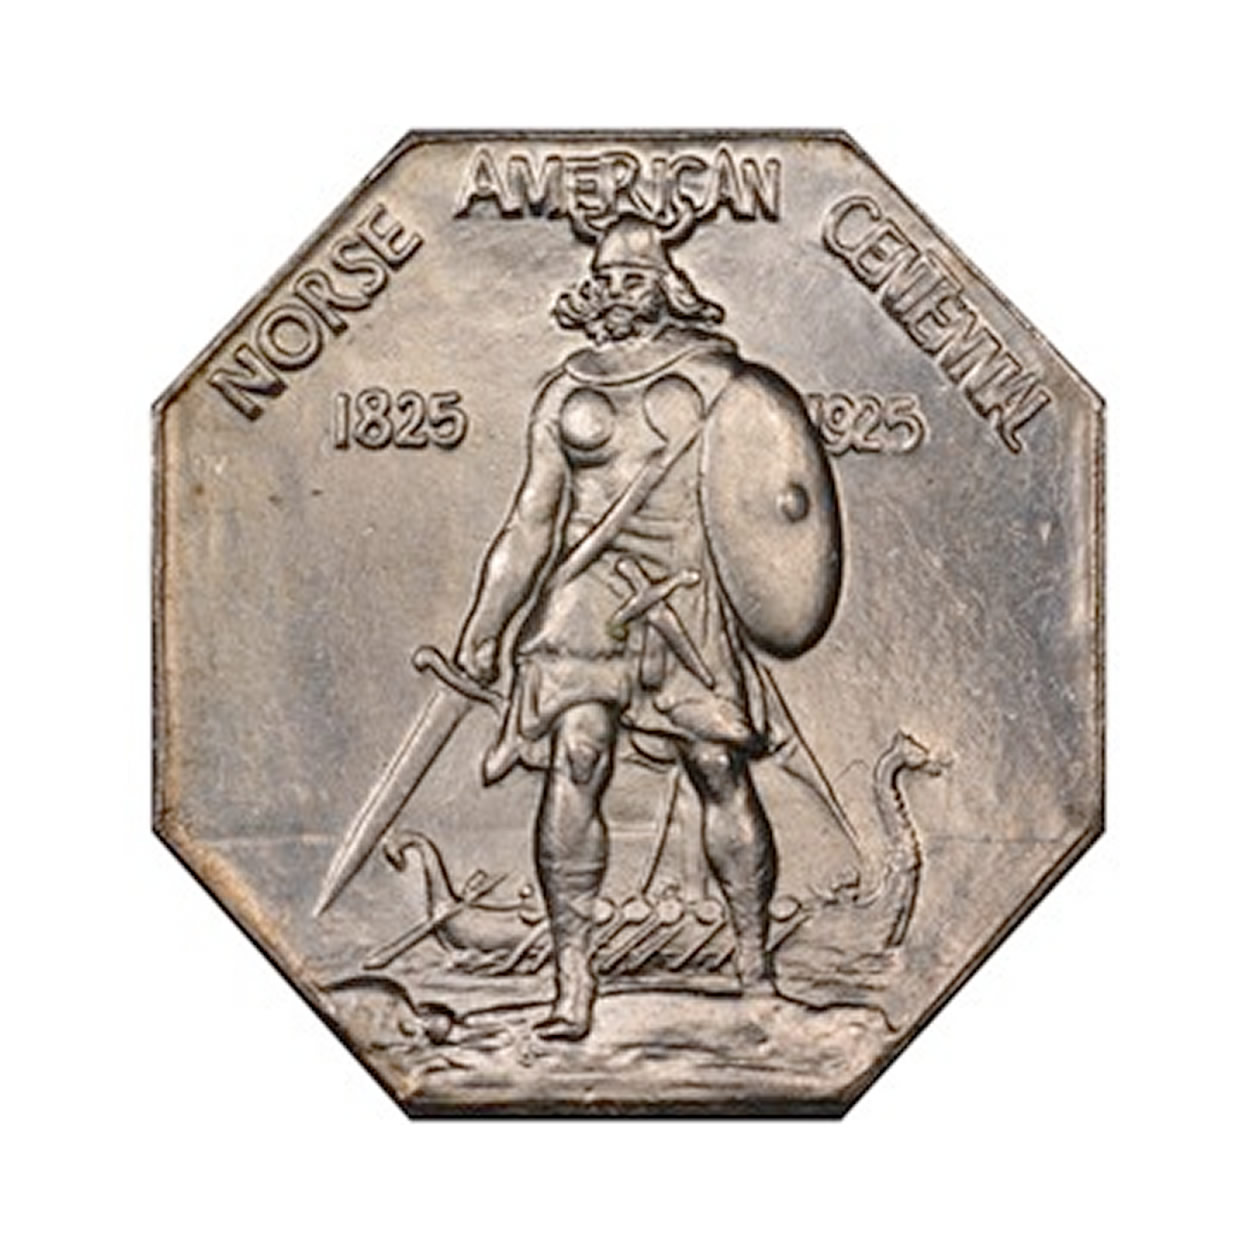 Norse American Medal